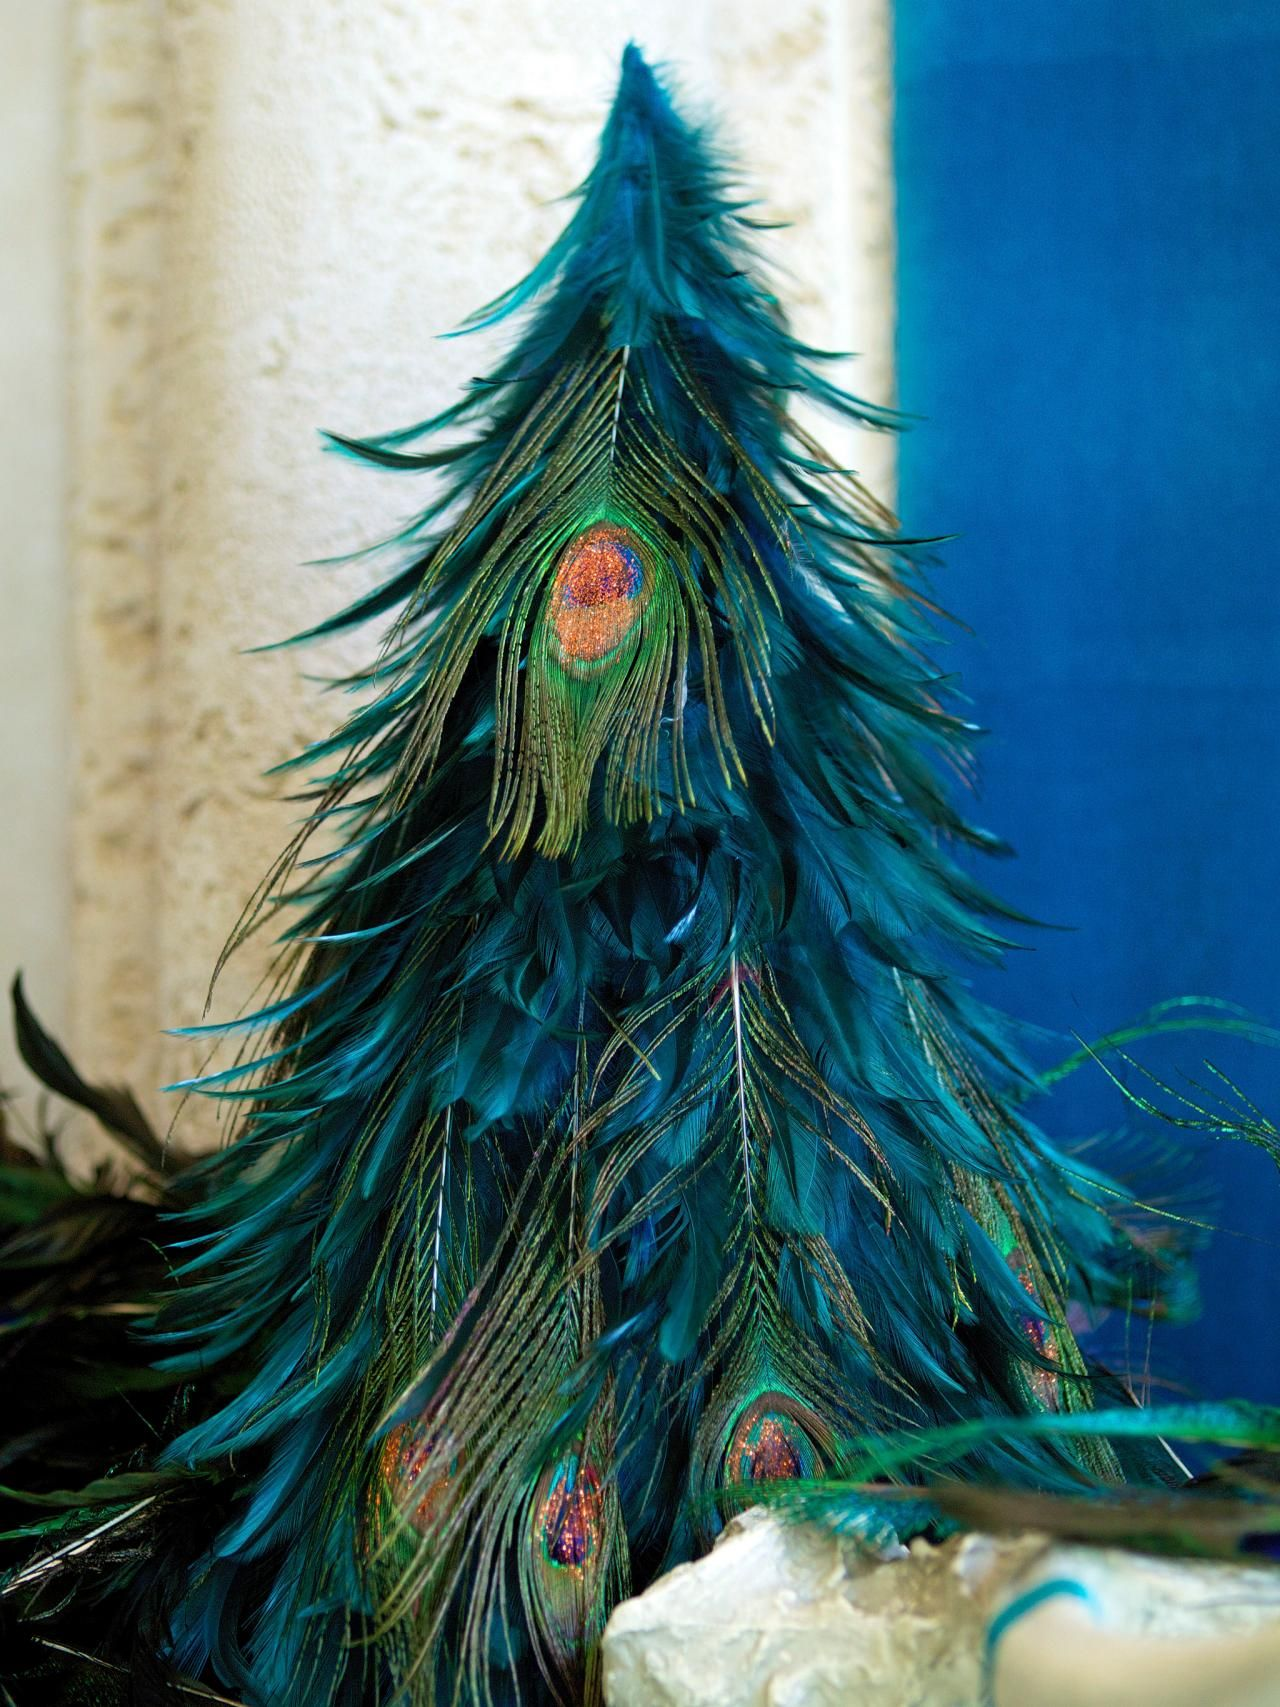 mesmerizing peacock for feather group decorations baby apartment baltimore def crewbaltimore of diy estate page tree feathers decor women uk commercial nursery gallery ideas christmas decorating cool picturesque real high porch a networking